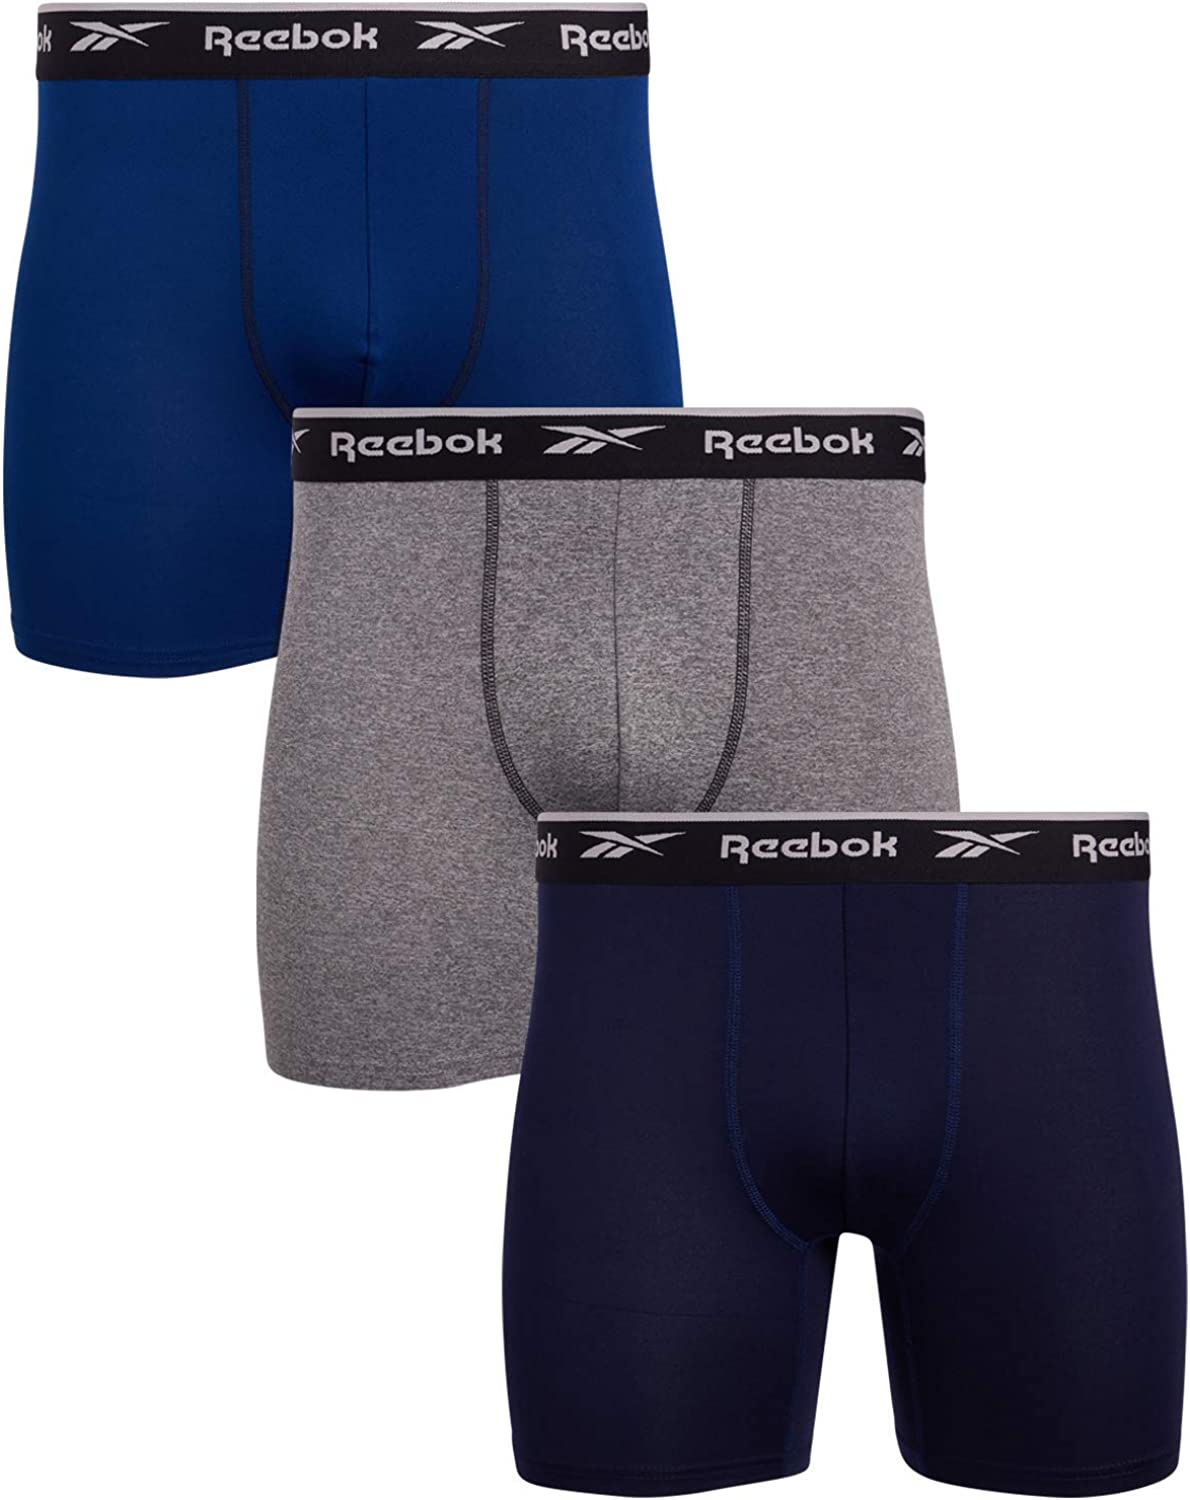 Meccanica guida istruttore  Reebok Men's Sport Soft Performance Boxer Briefs (3 Pack): Amazon.ca:  Clothing & Accessories